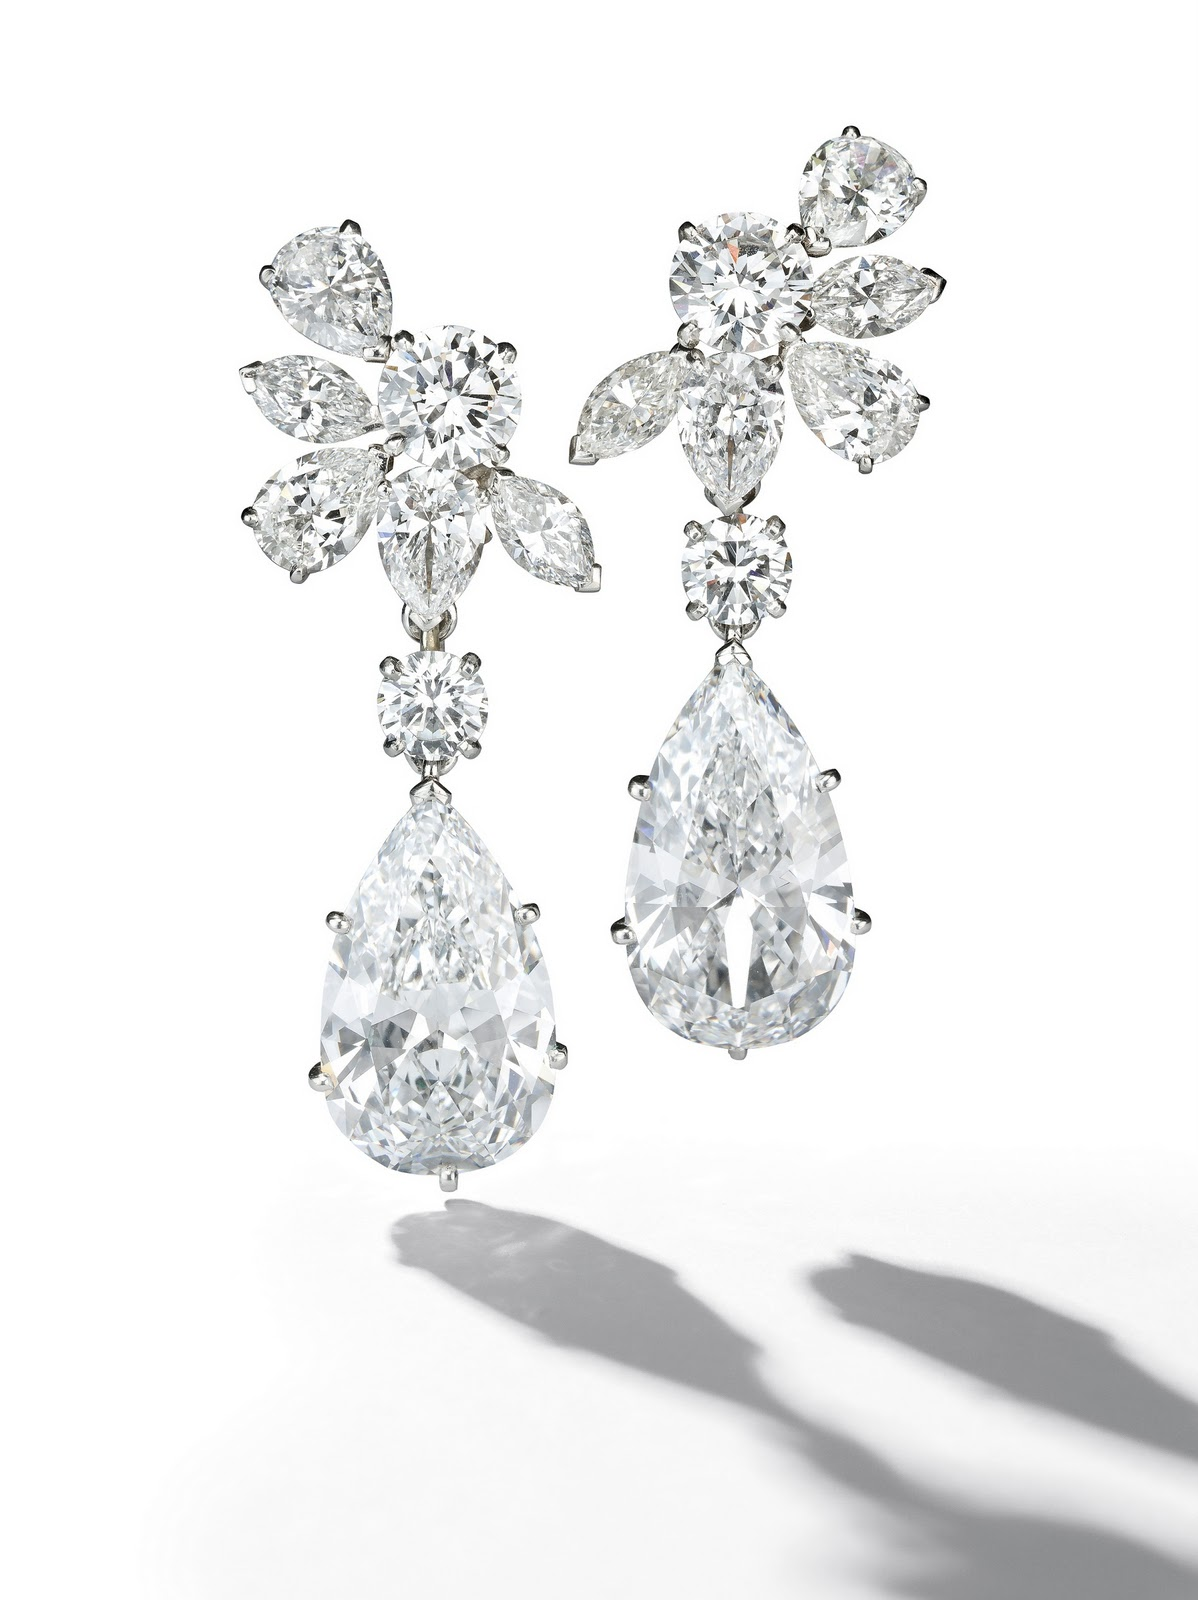 diamond feature inspiration round a love floral earrings from romance graff takes rosette beauty range inspired rose with flower collection diamonds new unveils jewels associated the by sapphire and